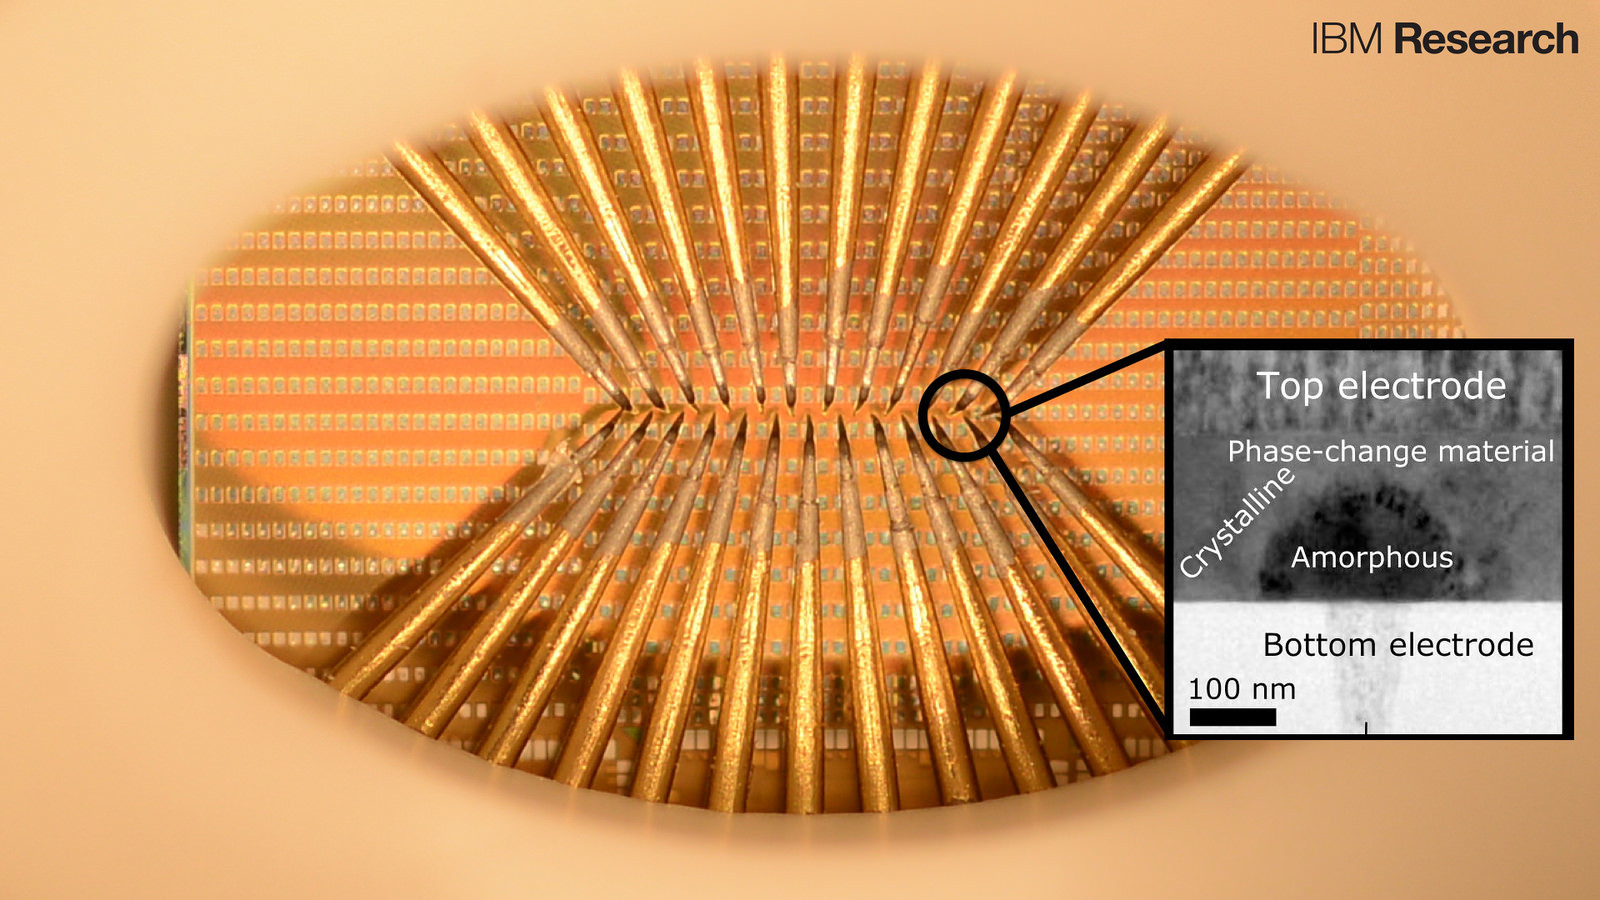 A chip with large arrays of phase-change devices that store the state of artificial neuronal populations in their atomic configuration. In the photograph, individual devices are accessed by means of an array of probes to allow for precise characterization, modeling and interrogation.